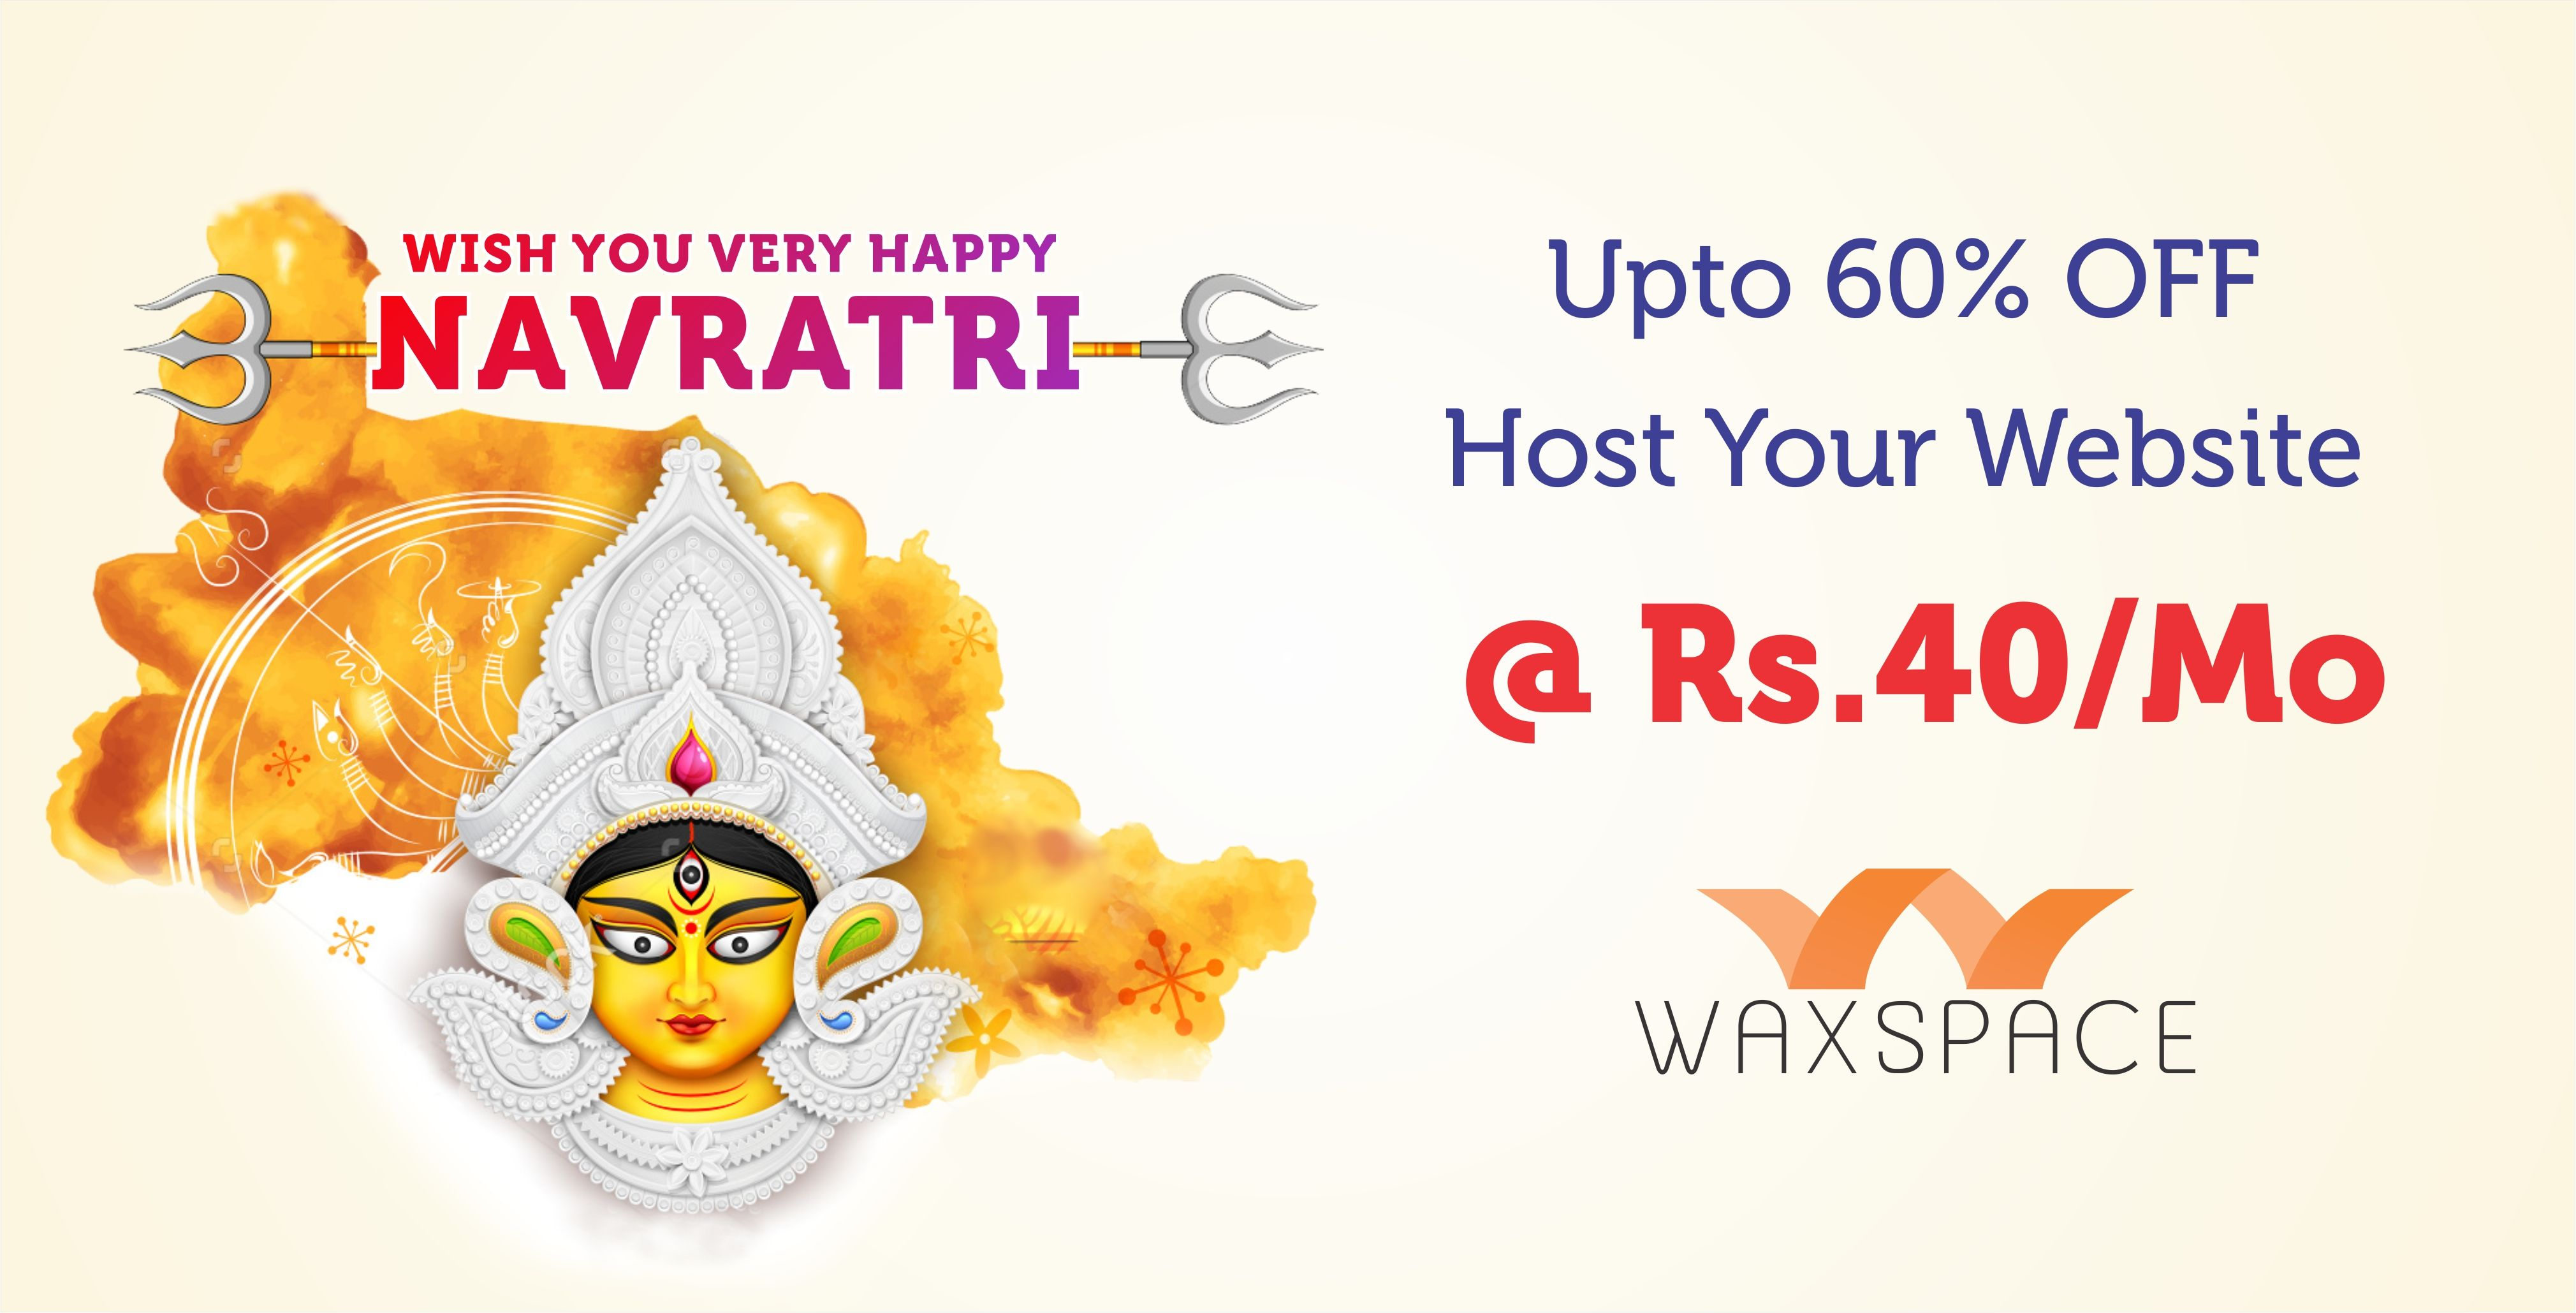 Wish You Happy Navratri from Waxspace. Get special 60